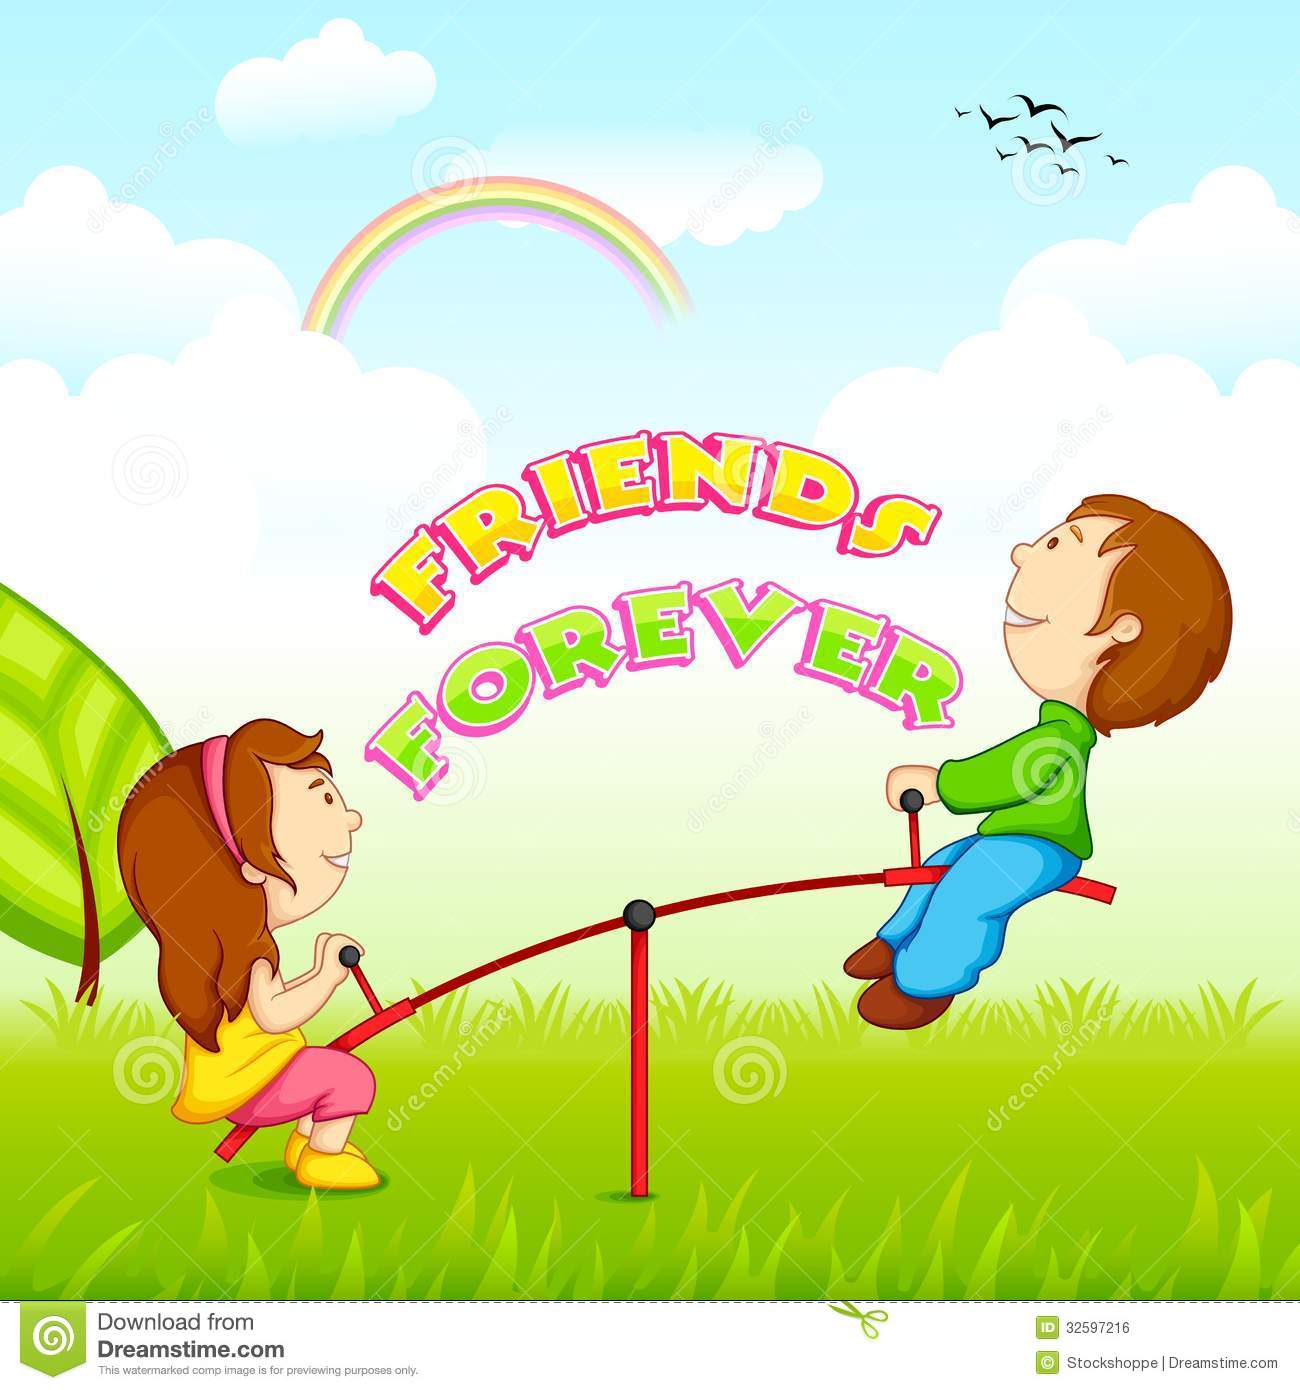 Kids Riding On Seesaw For Friendship Day Royalty Free